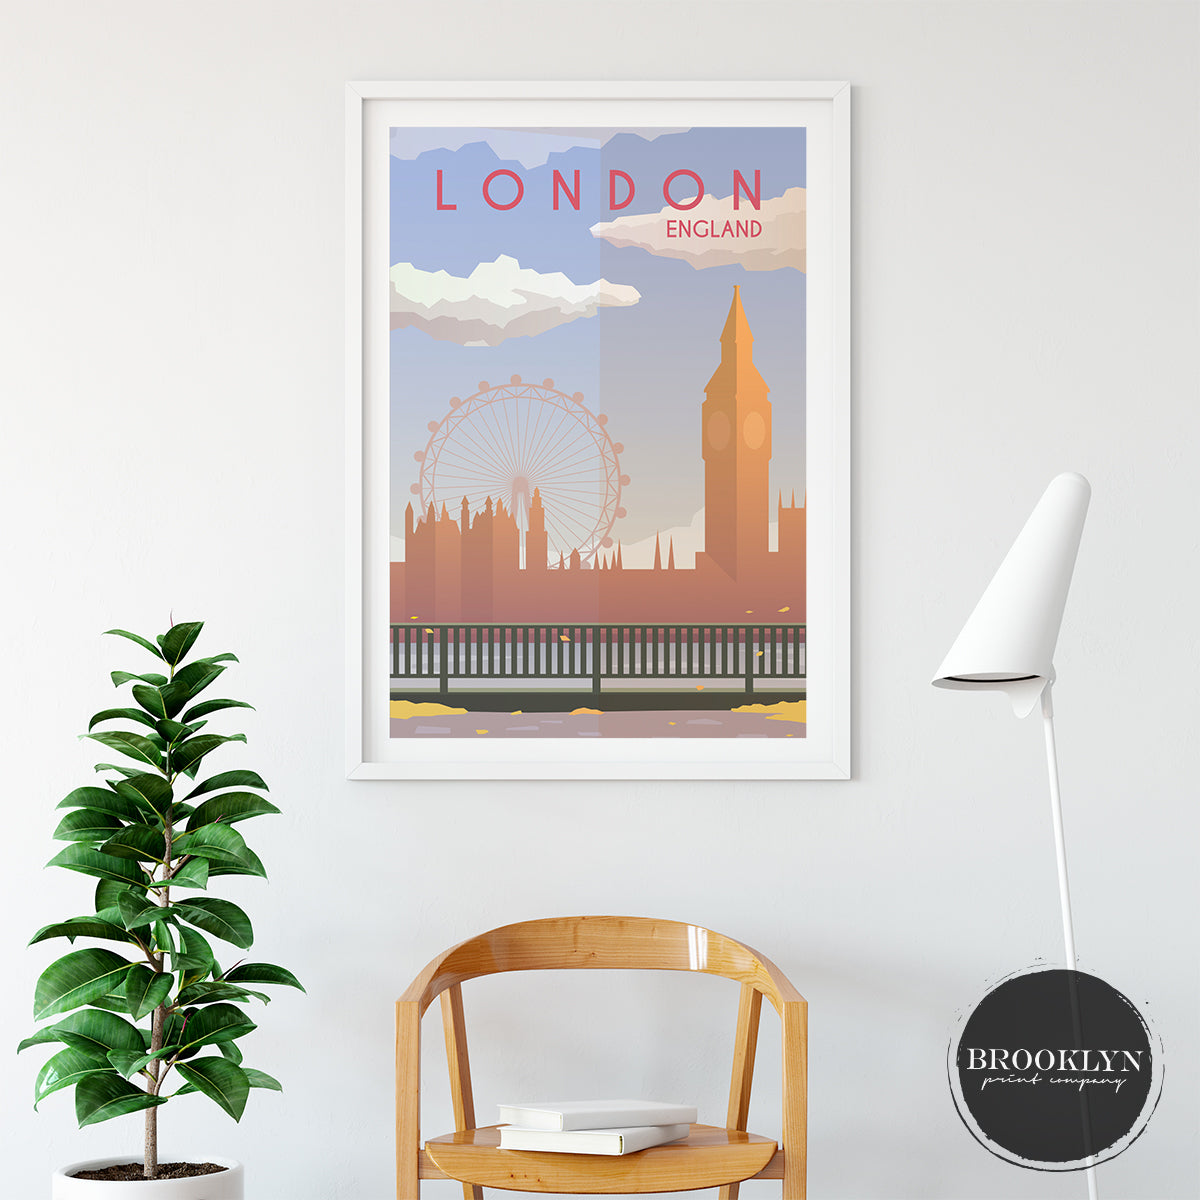 London Skyline City Landmarks Travel Poster Art Print - VIVIDEDITIONS